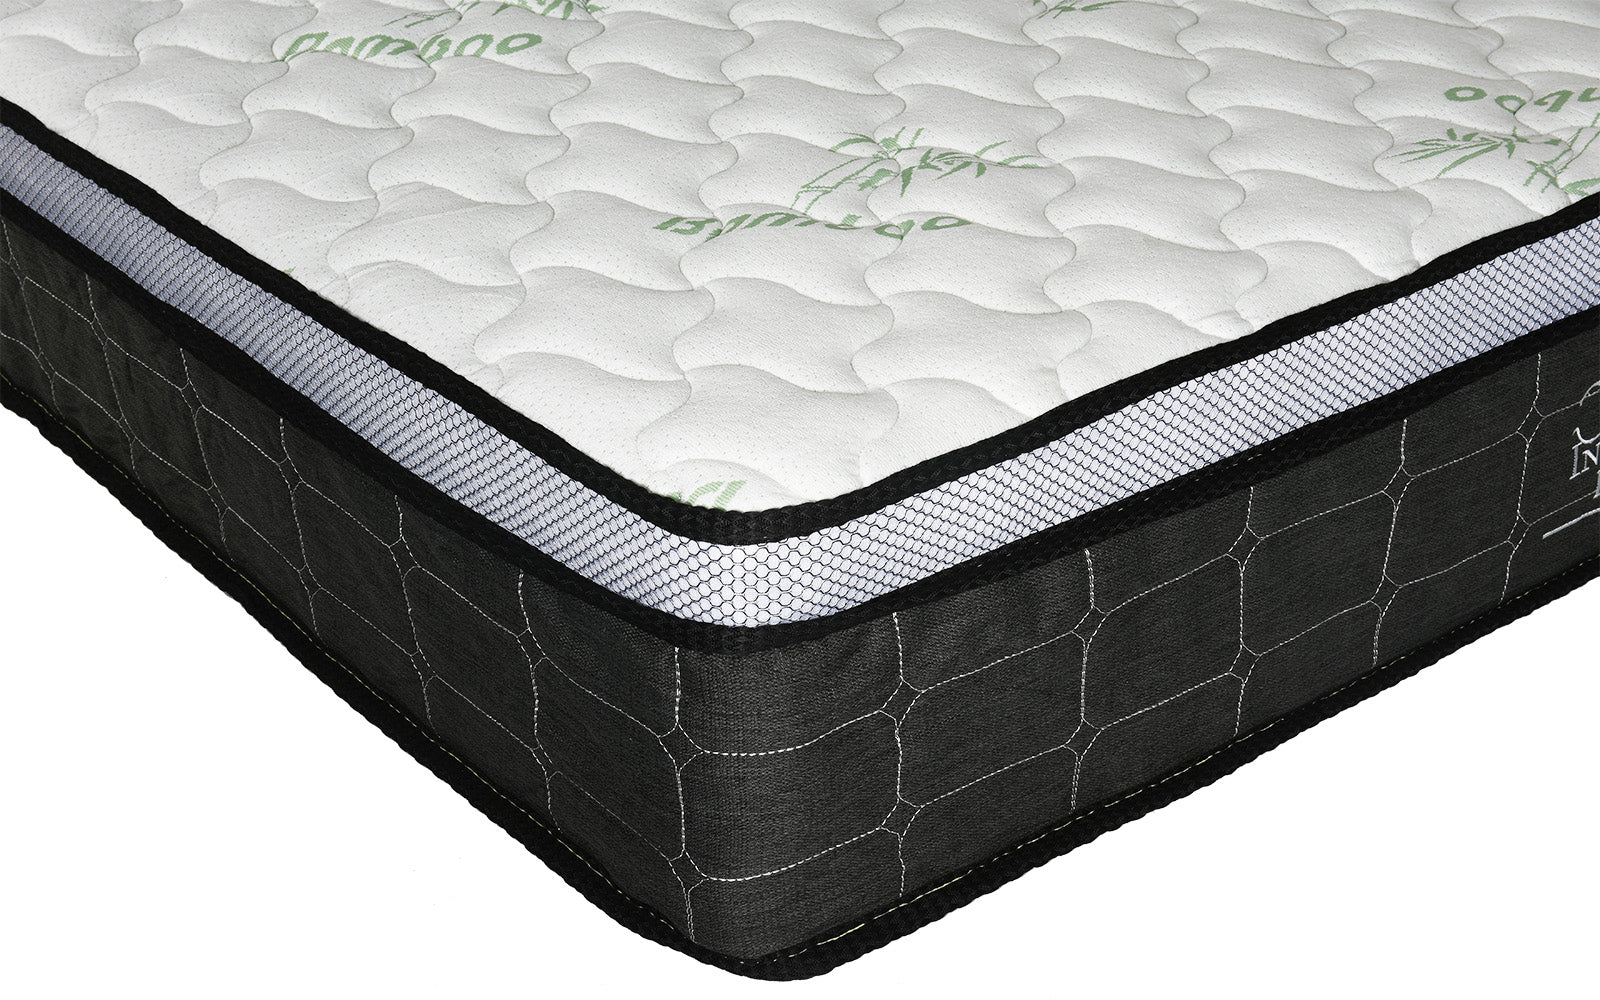 sourceimage products signature mattress foam inch us memory certified mattresses eng sleep certipur with futon memoir details